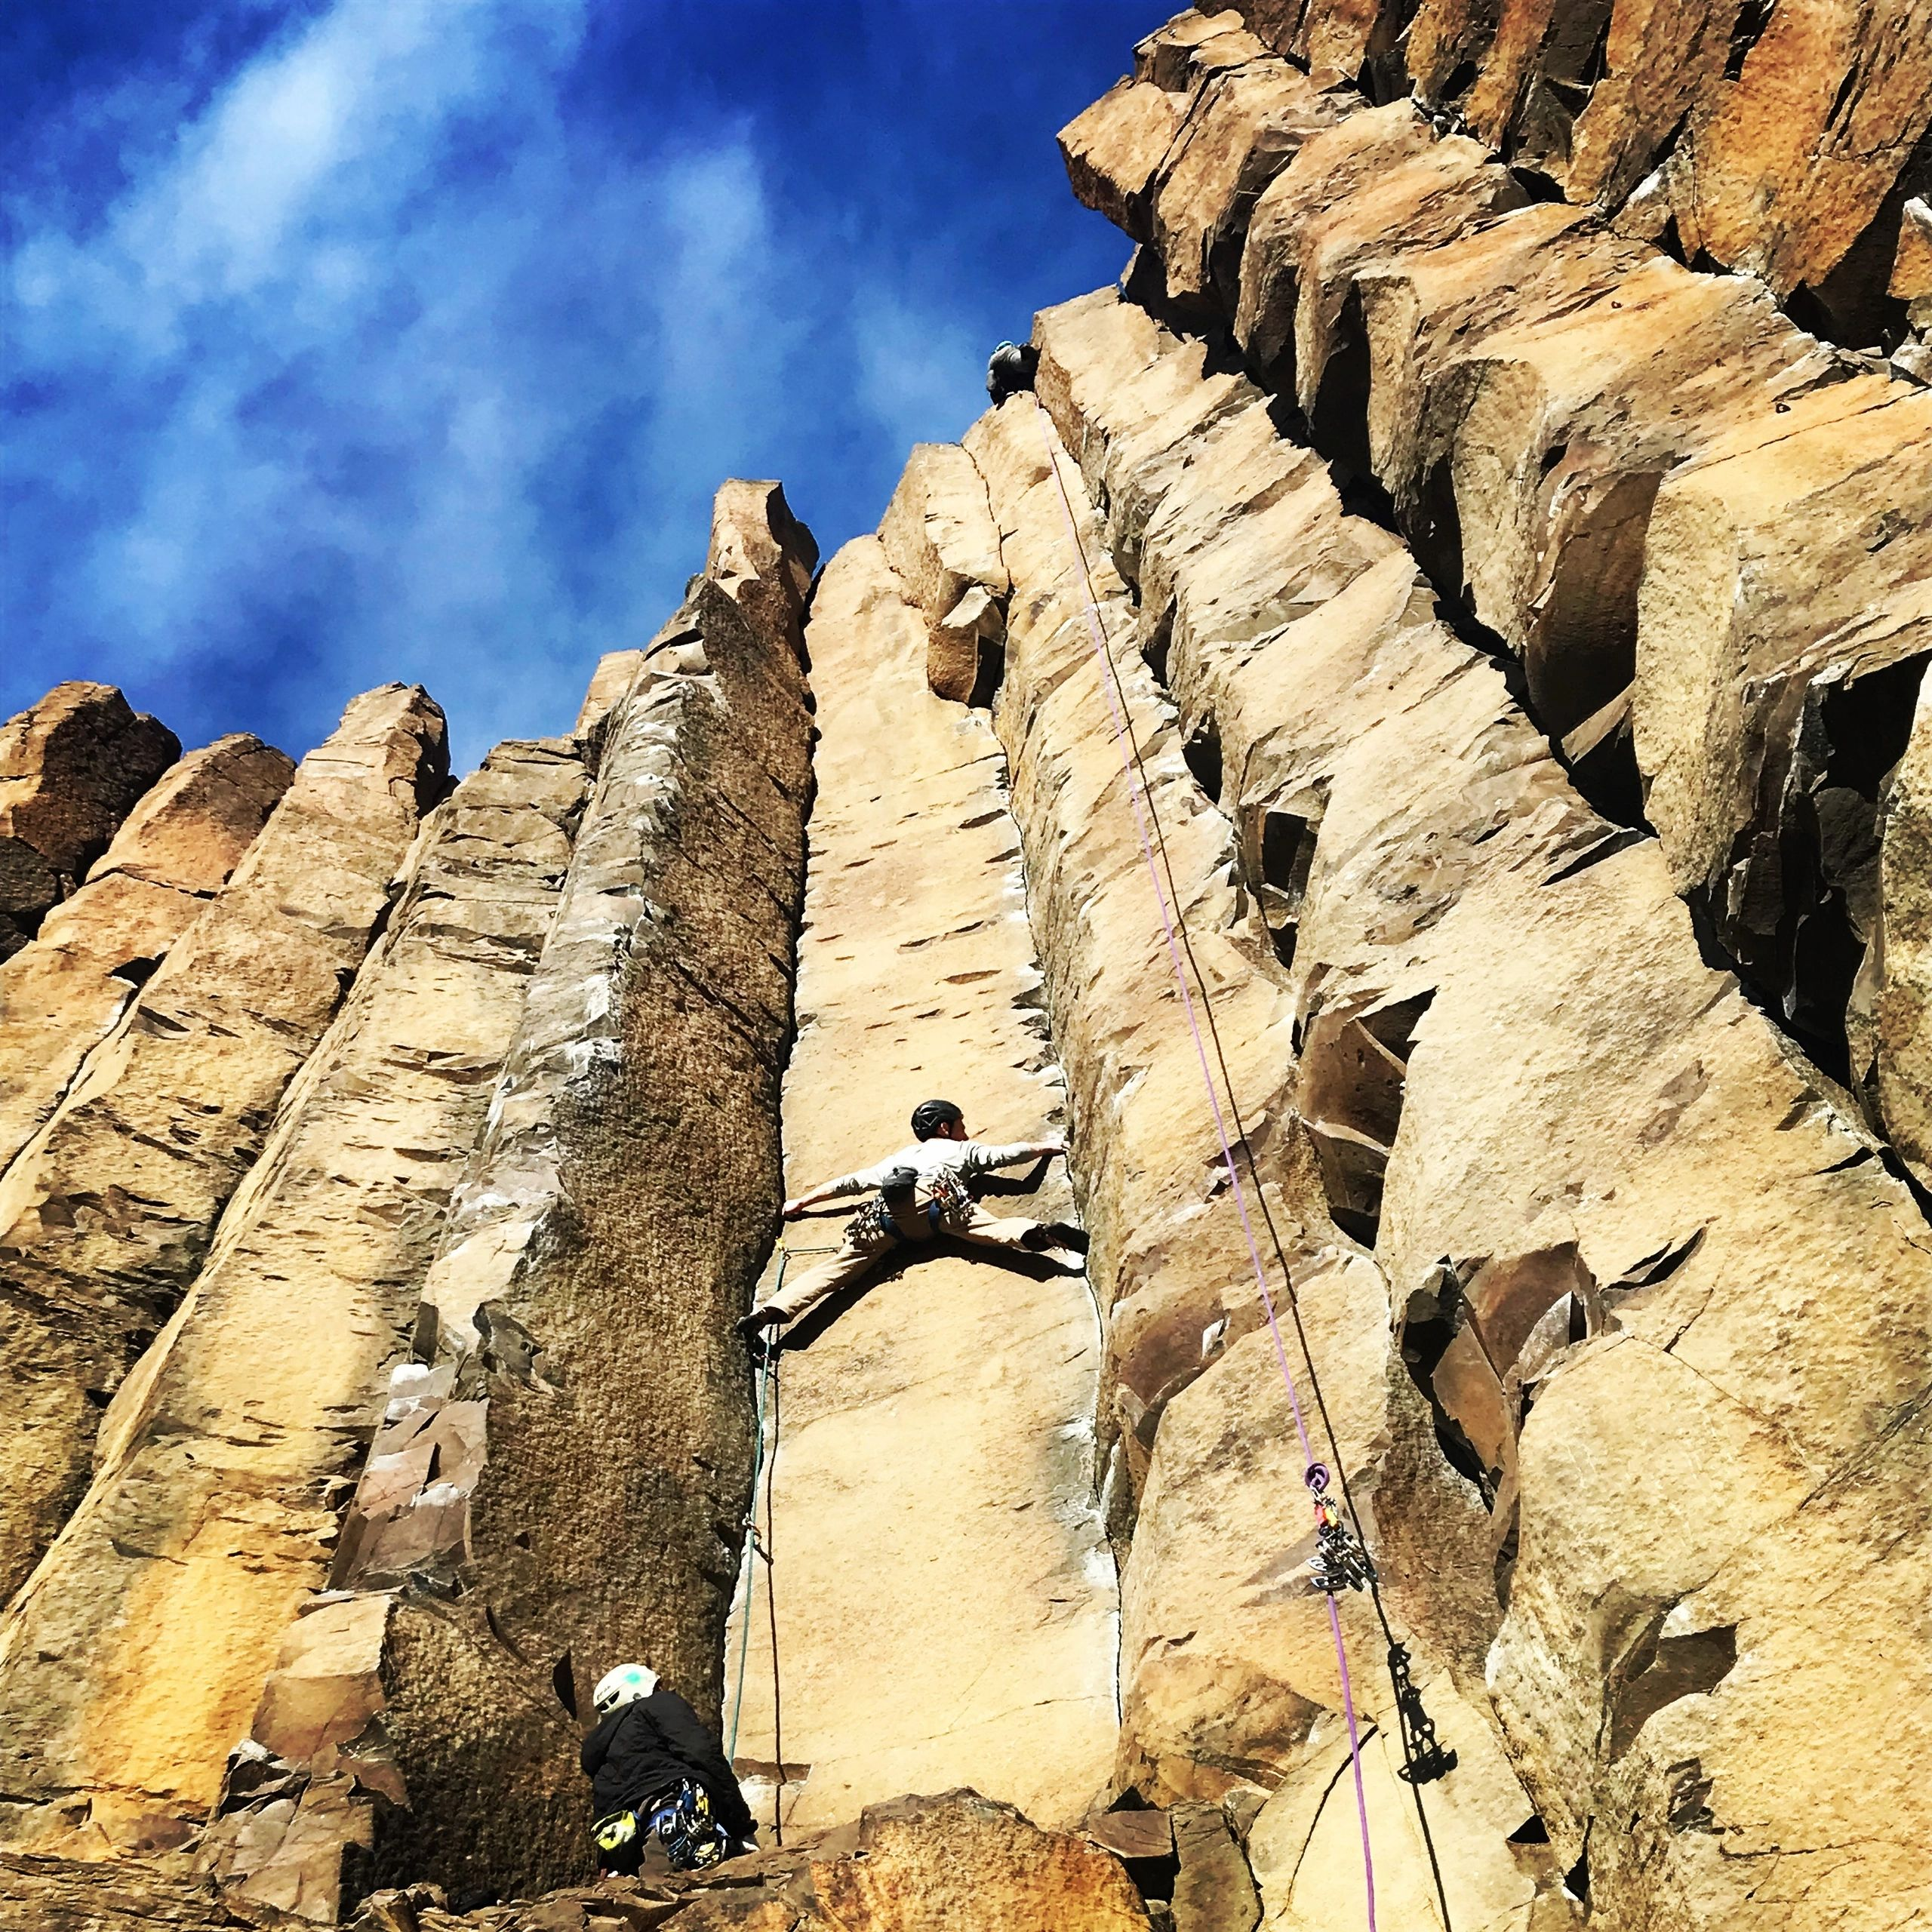 "{""blocks"":[{""key"":""fr1oo"",""text"":""Climbing Guide, Rock Climbing Guide, Guided Rock Climbing, Spokane, Washington, Idaho, Learn to Rock Climb. Sport Climbing, Trad Climbing, Gym to Crag, Lead Climbing, Outdoor Rock Climbing, Vantage, Banks Lake, Frenchman Coulee, Fisk State Park, Riverside State Park, Tumtum Washington, McLellan, Deep Creek Climbing,"",""type"":""unstyled"",""depth"":0,""inlineStyleRanges"":[],""entityRanges"":[],""data"":{}}],""entityMap"":{}}"